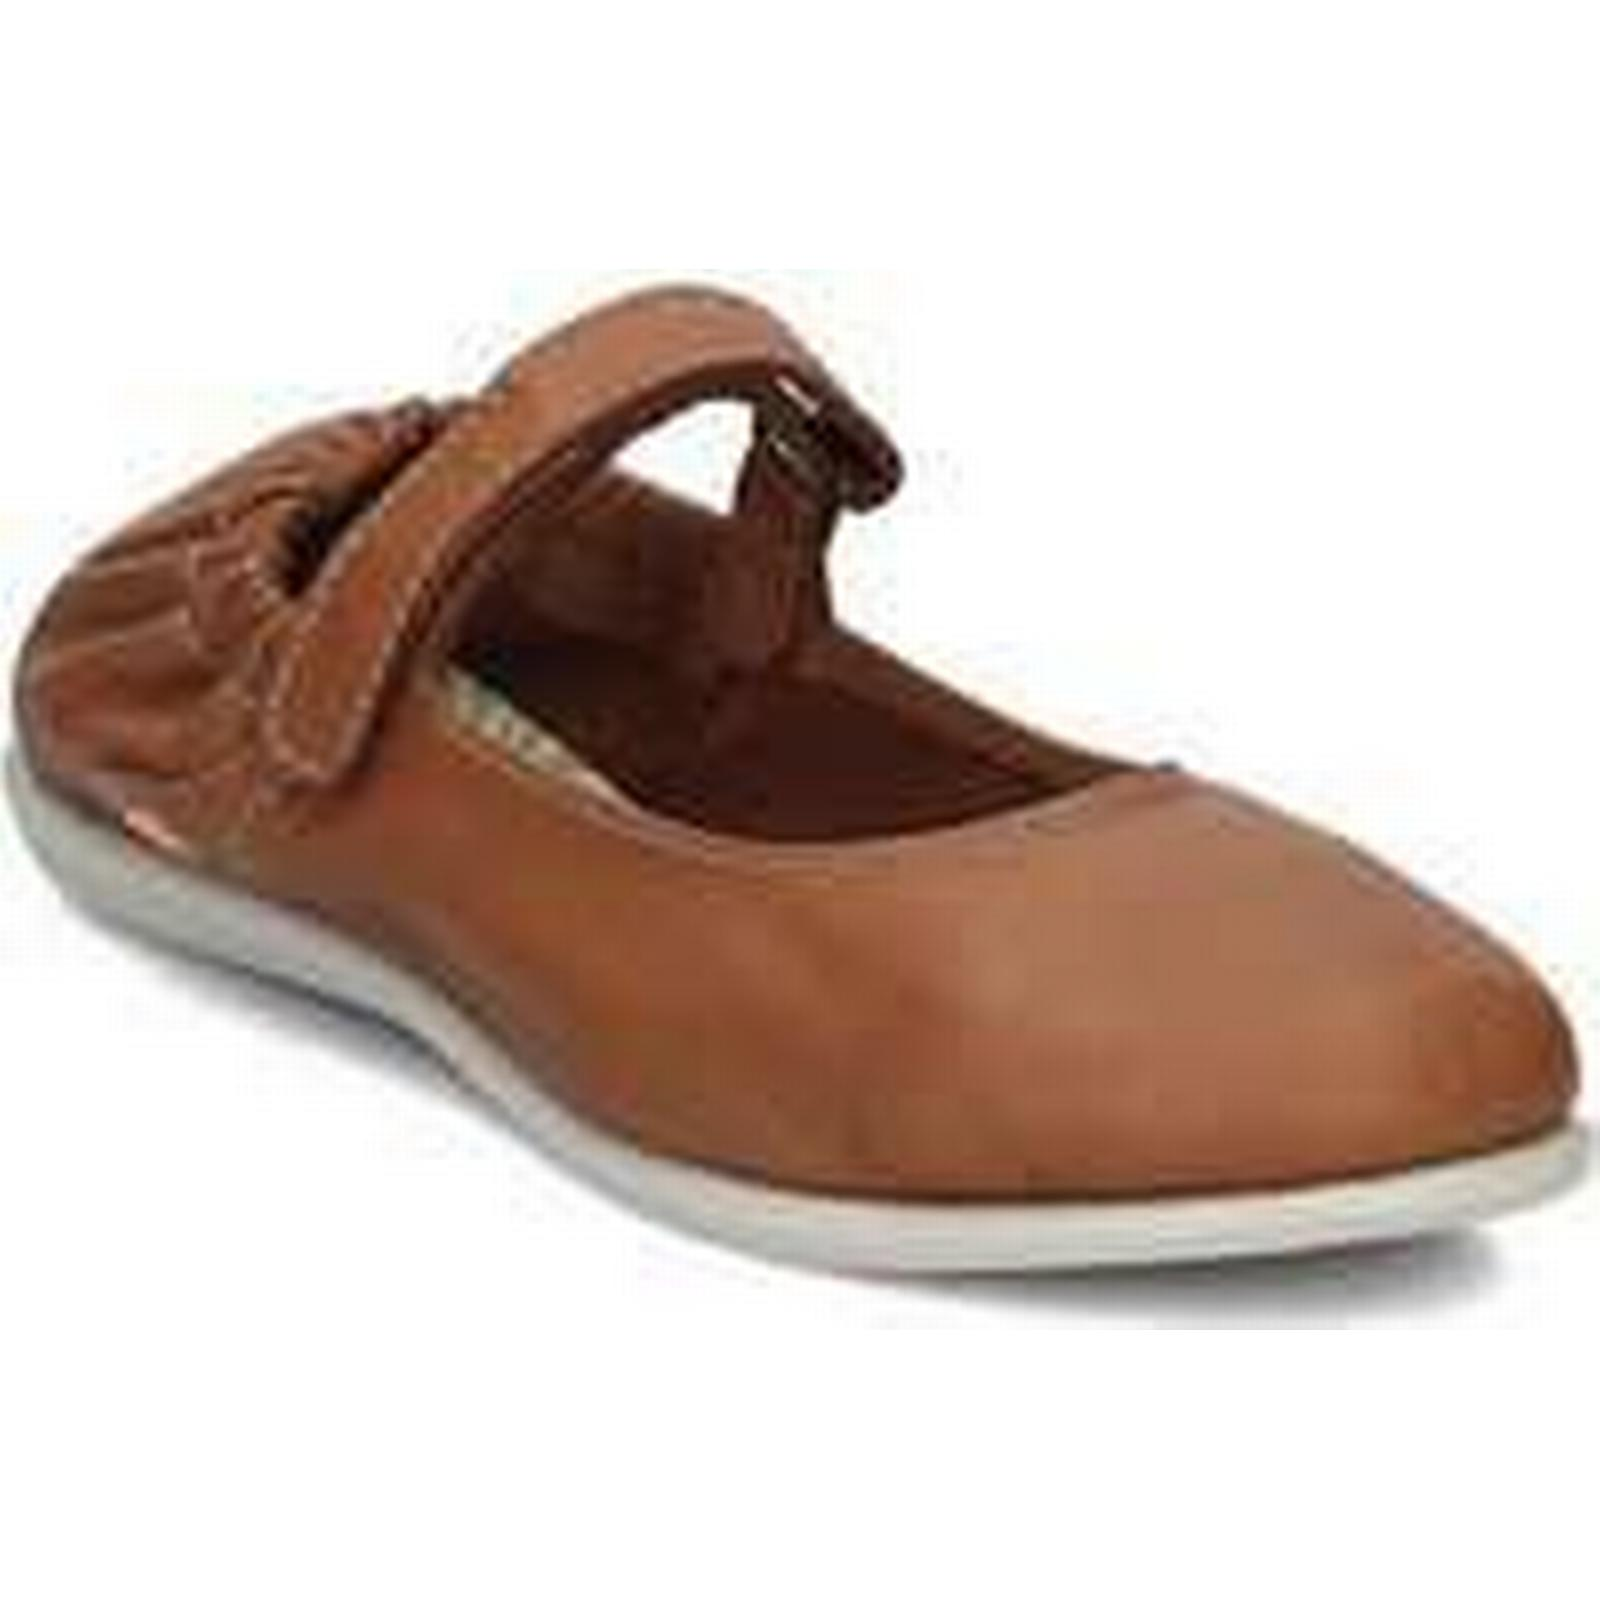 Spartoo.co.uk Softinos / Val women's Shoes (Pumps / Softinos Ballerinas) in Brown b7913d